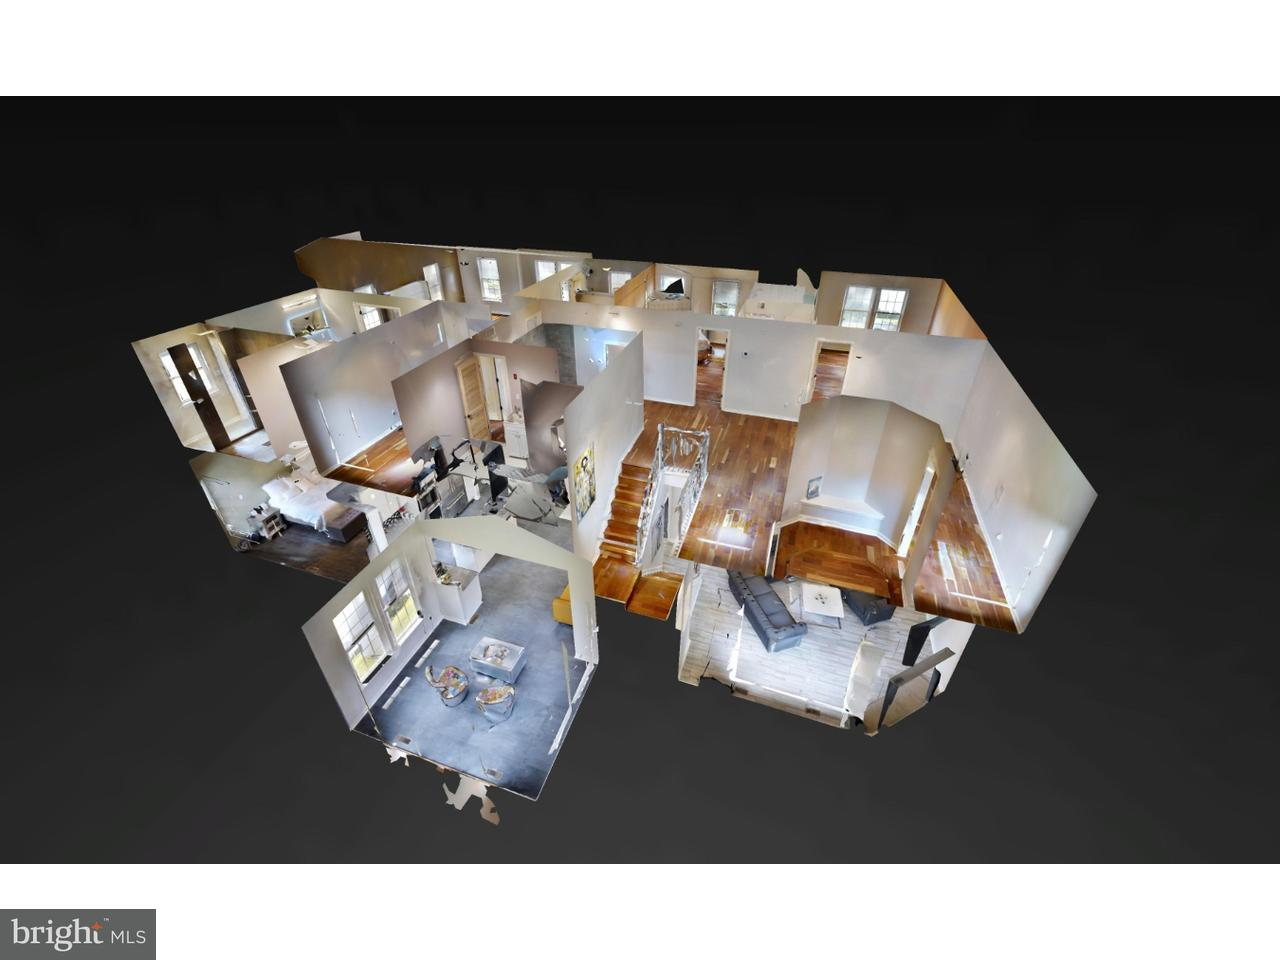 Single Family Home for Sale at 1156 E FOUNDS Street Townsend, Delaware 19734 United States